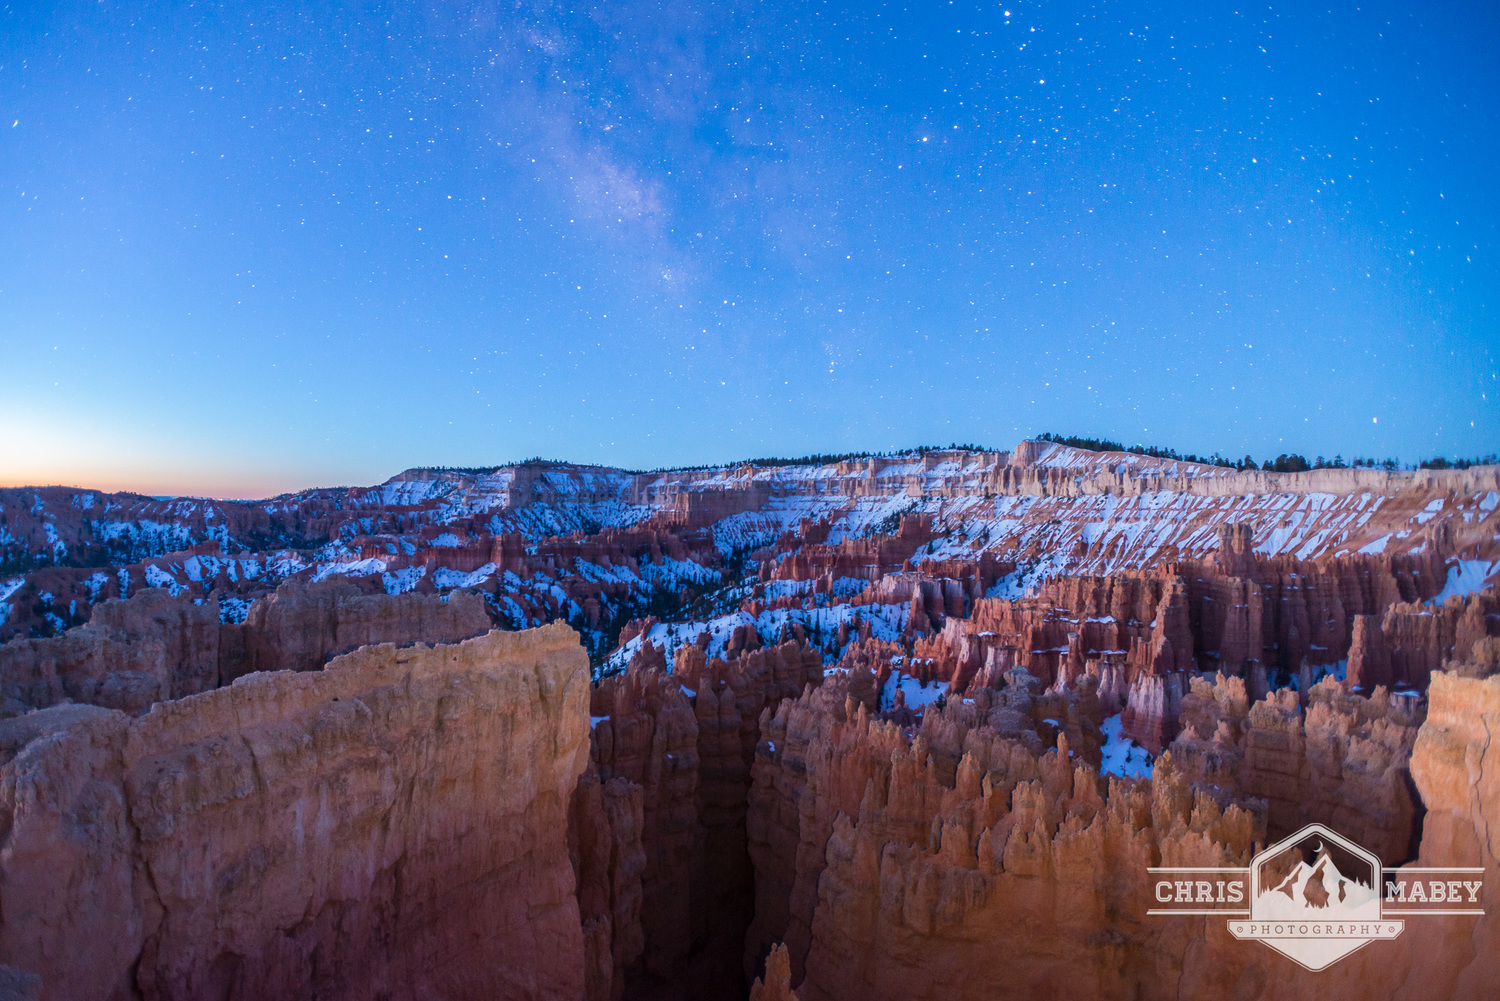 The Milky Way hangs in the air over Bryce Canyon as the sun approaches